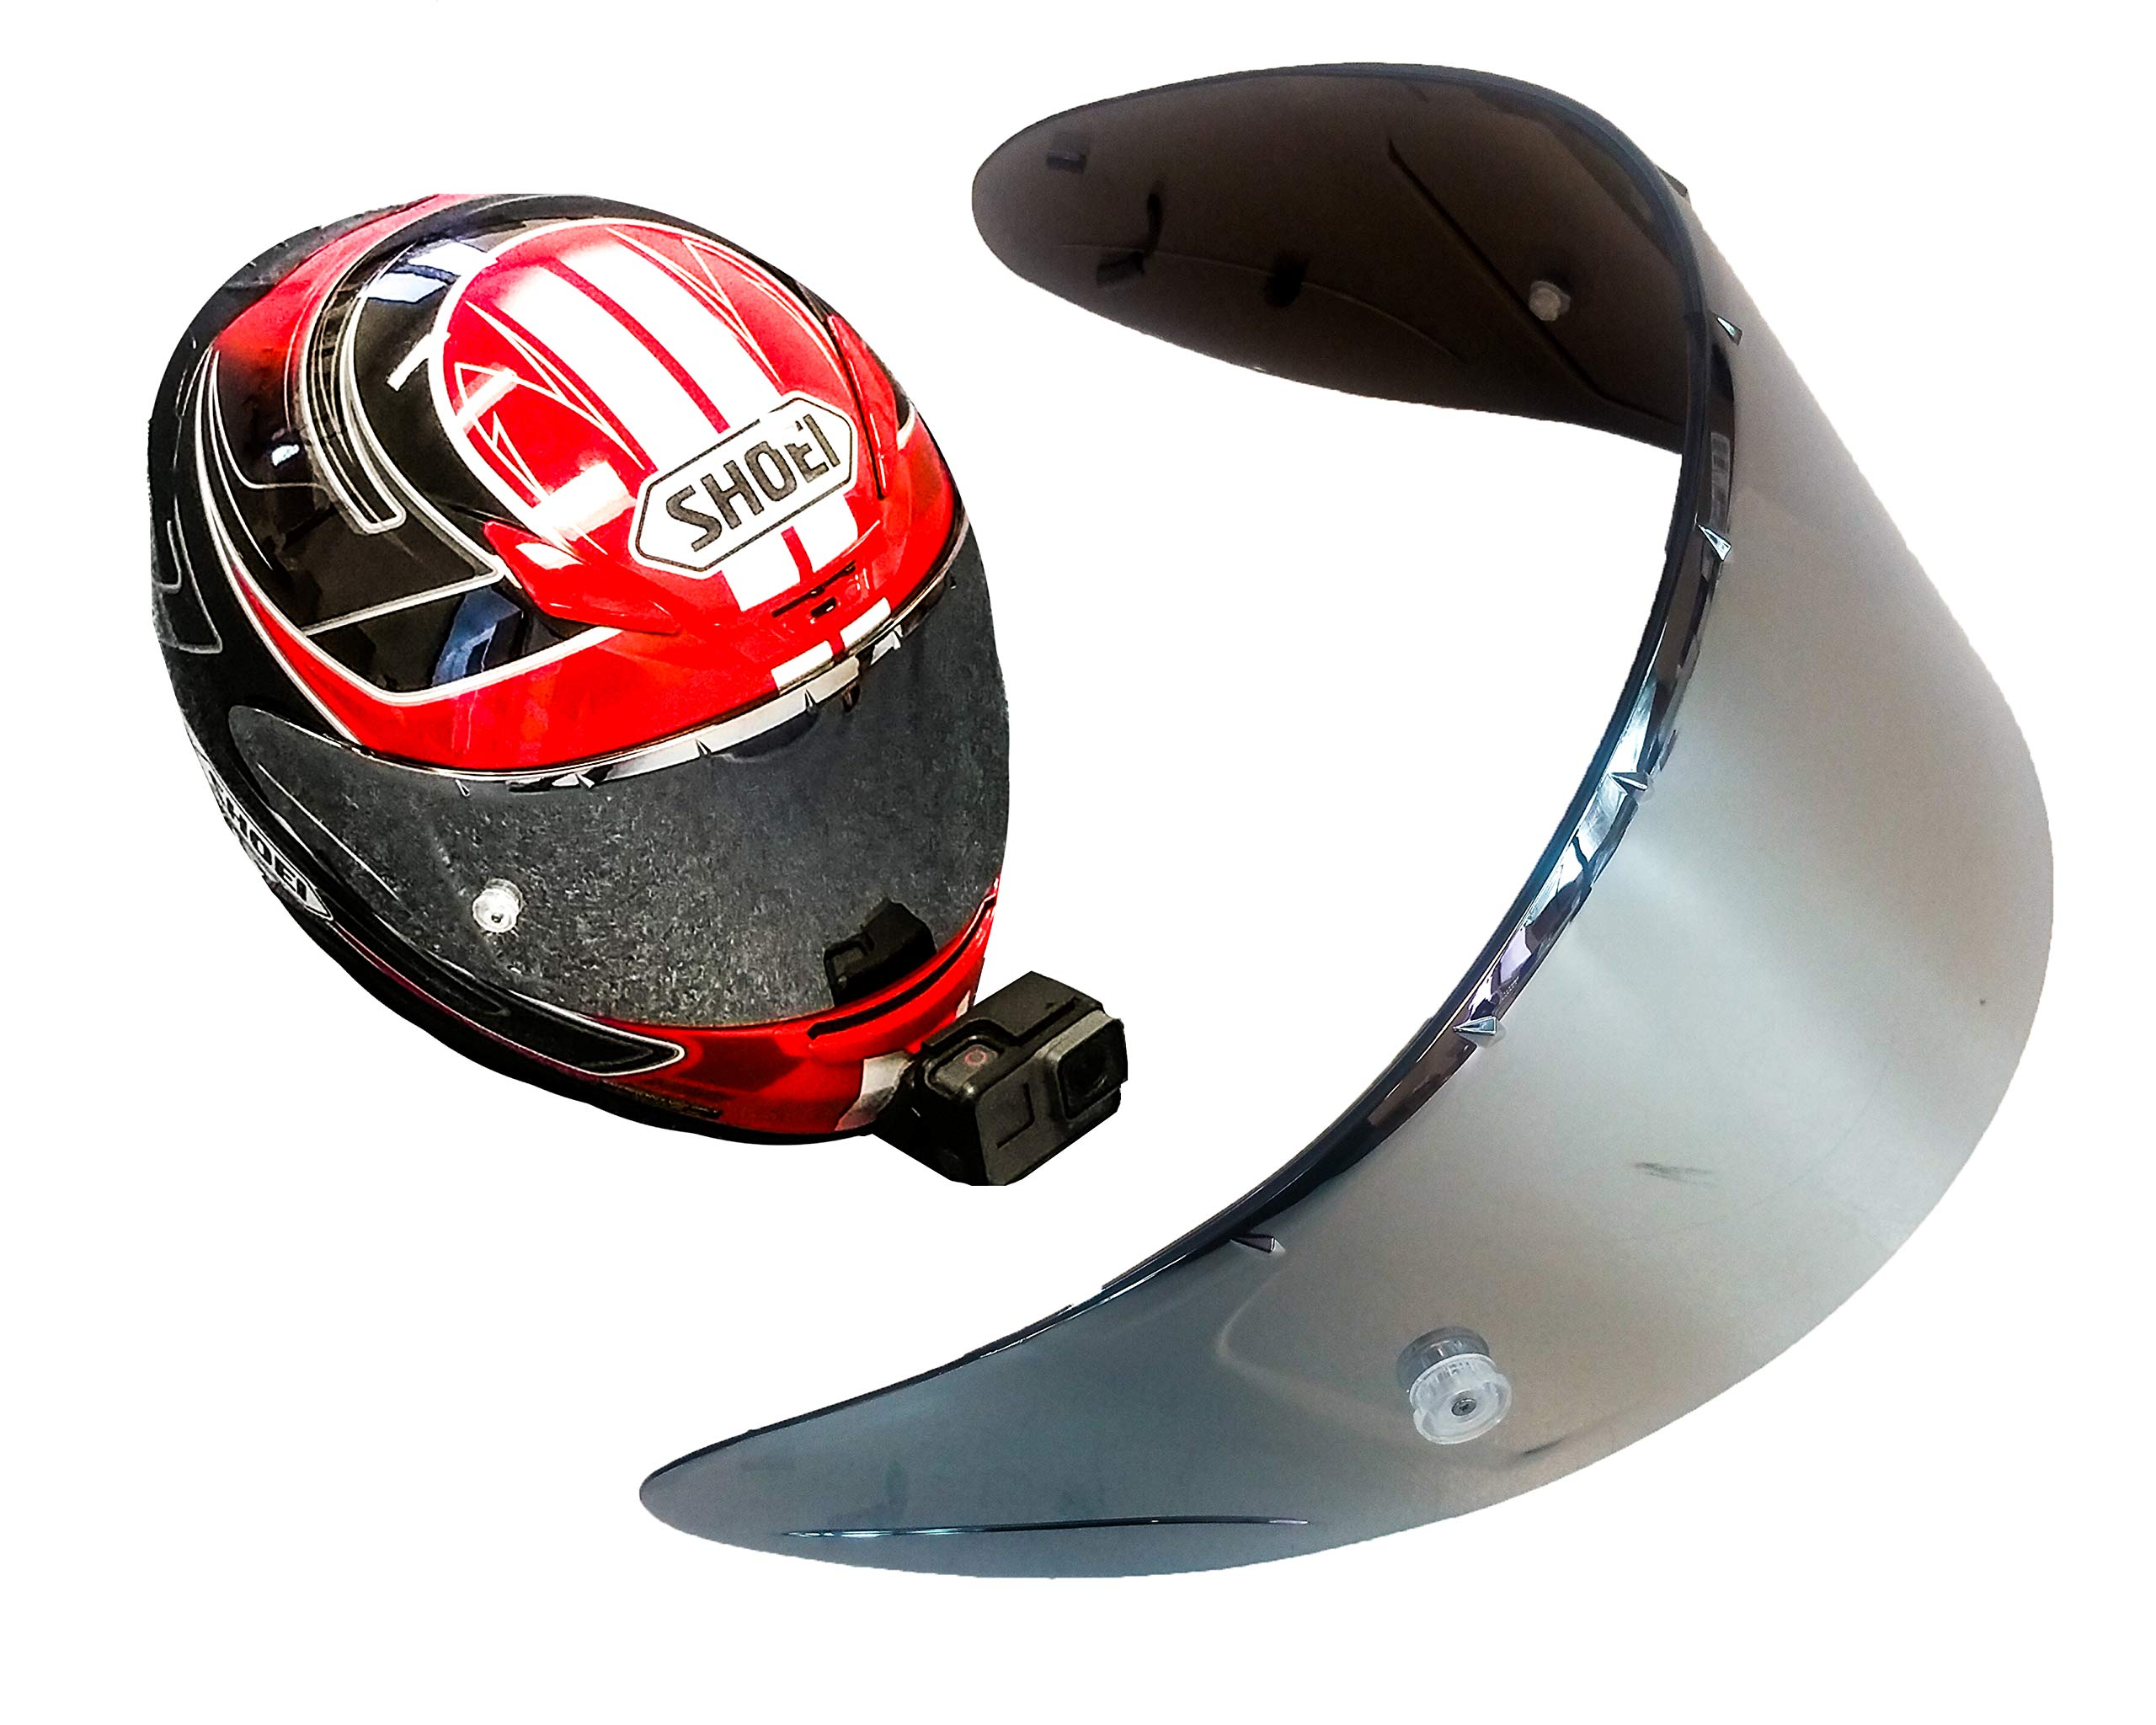 OZ-USA Mirror X-14 CWR-F CWR-1 Pinlock X-Spirit 3 RF-1200 RF-SR RF1200 Aftermarket Shoei Helmet Shield Visor Motorcycle